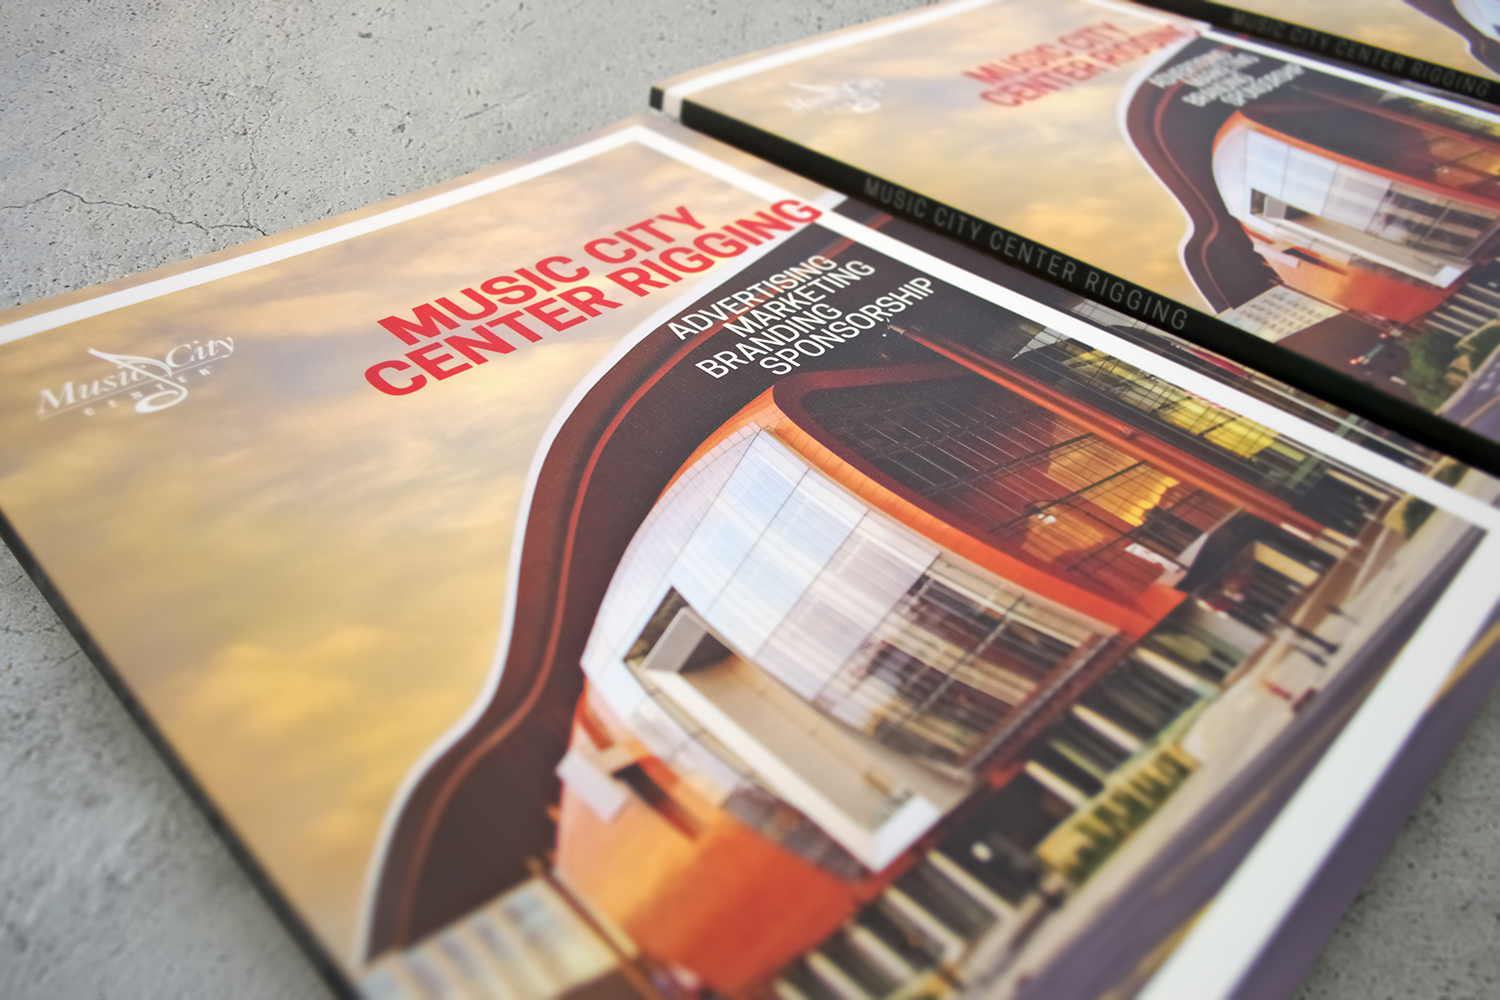 music-city-center-collateral-2.jpg